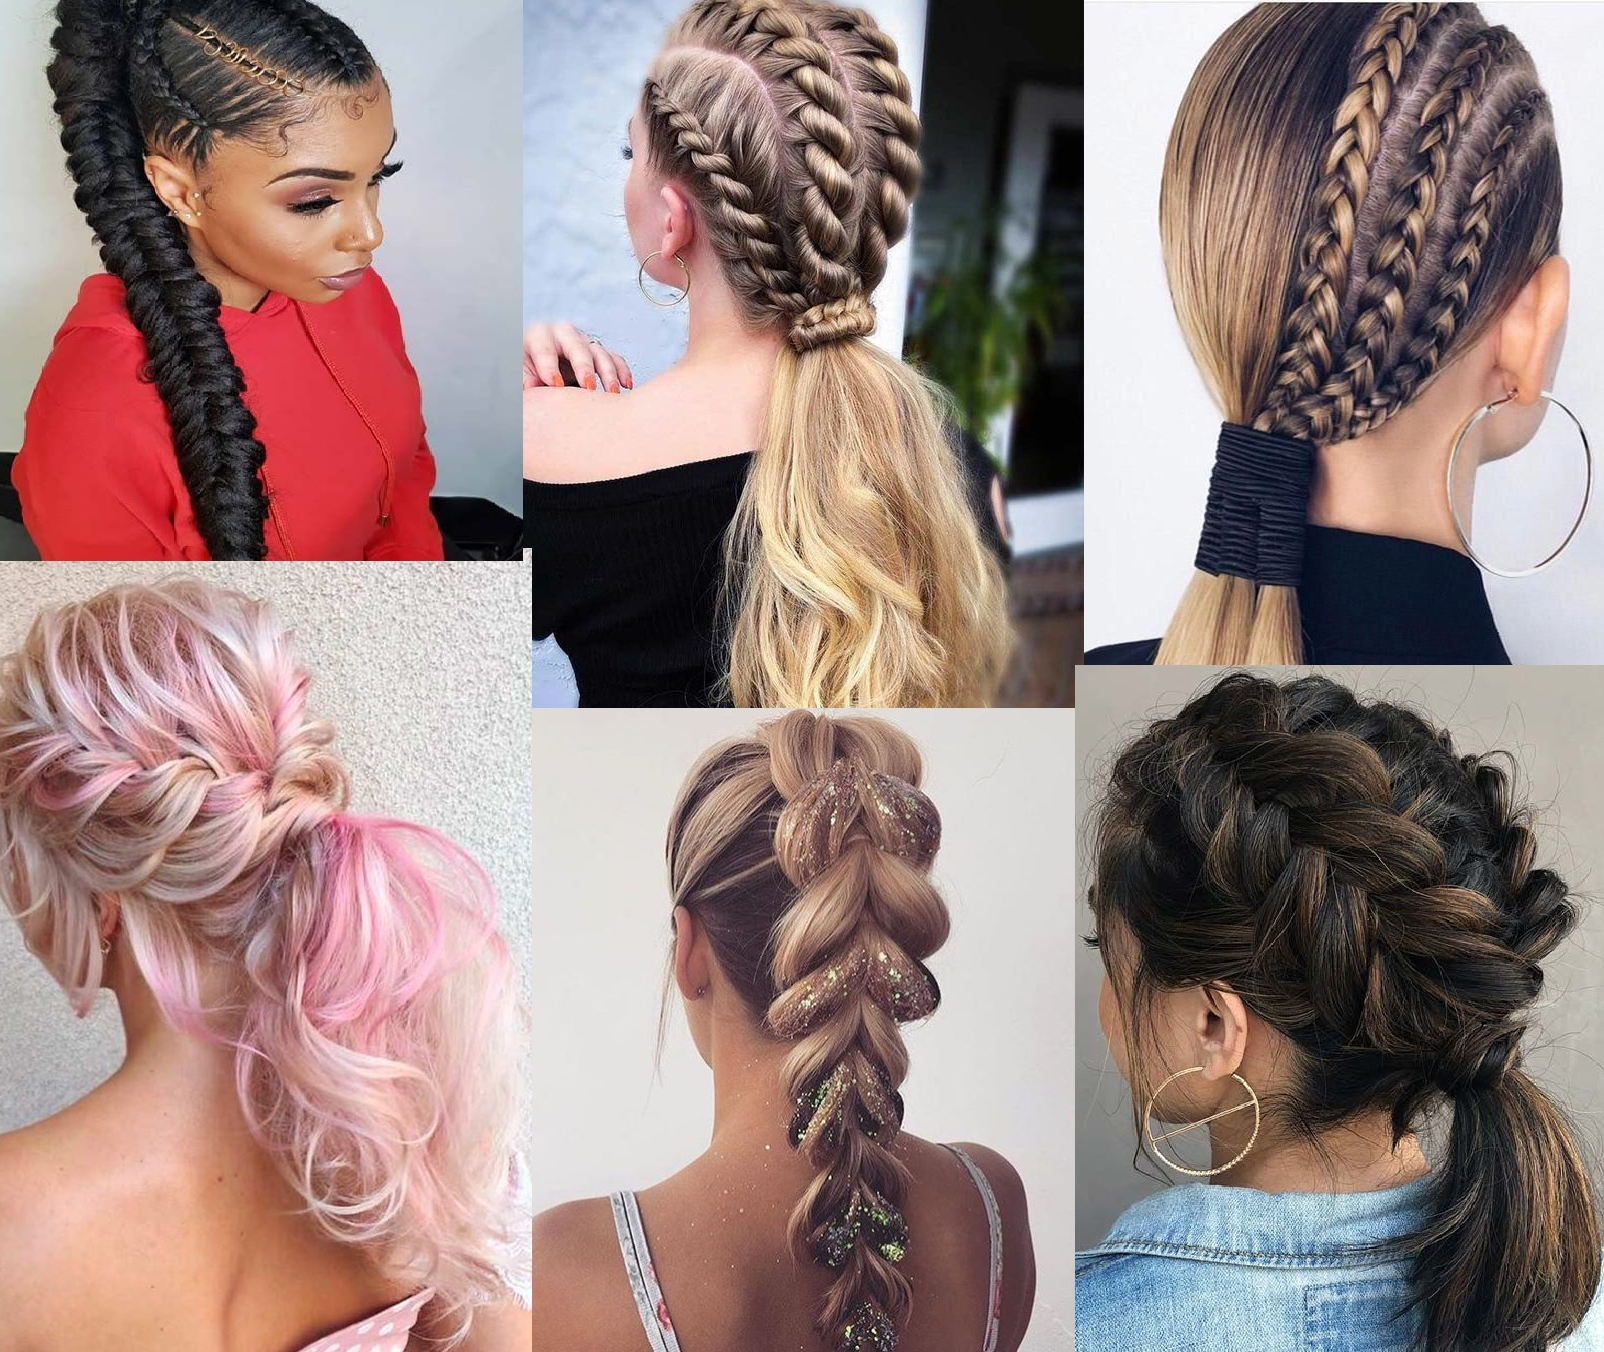 Well Known Ponytail Braid Hairstyles For Braided Ponytail Hairstyles You Must Try! (Gallery 5 of 20)